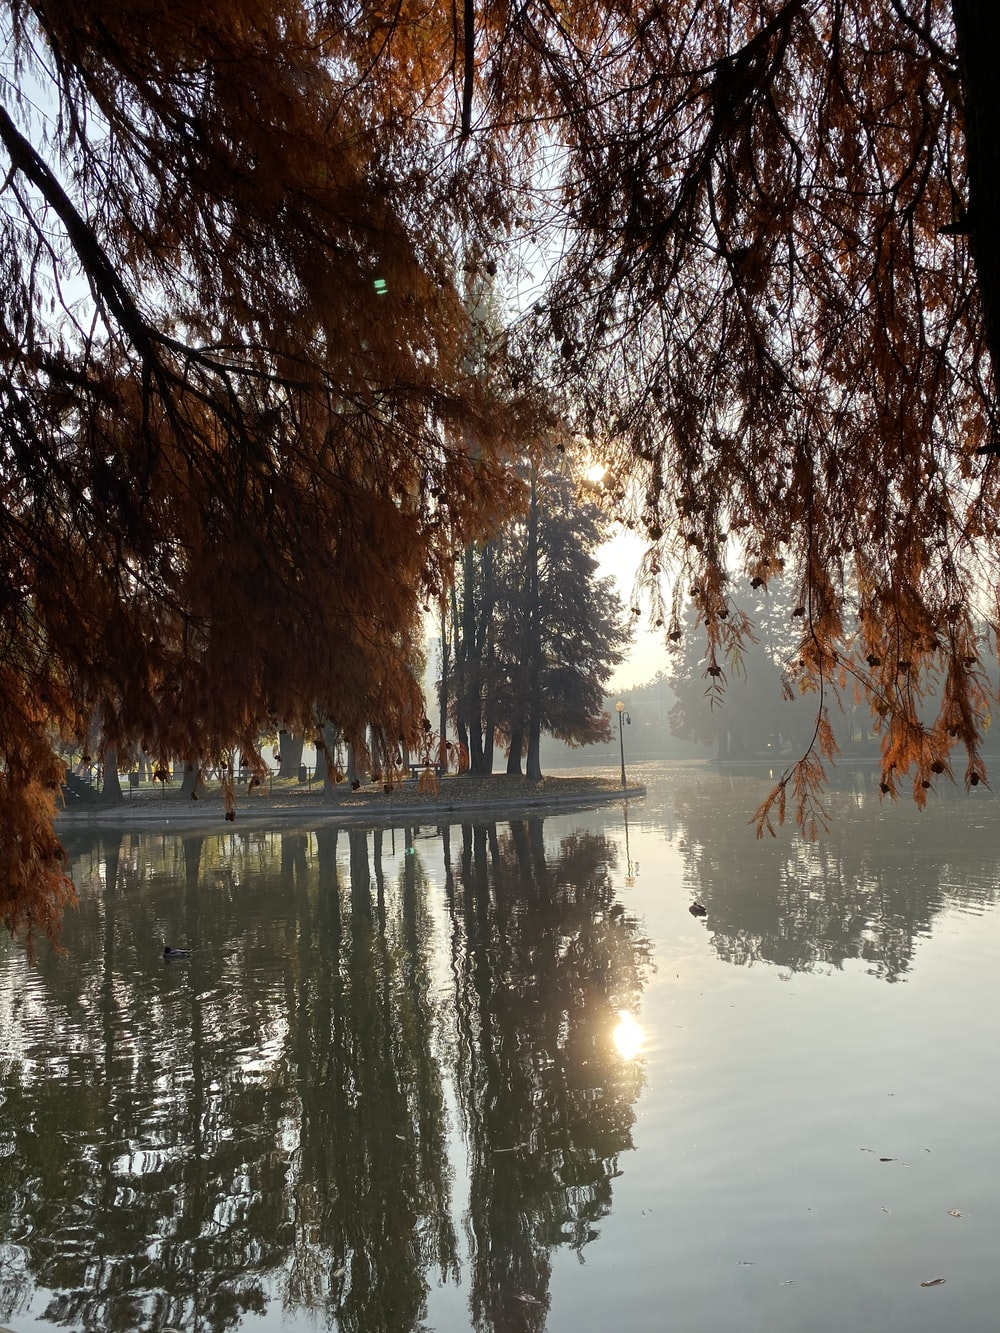 trees beside calm body of water